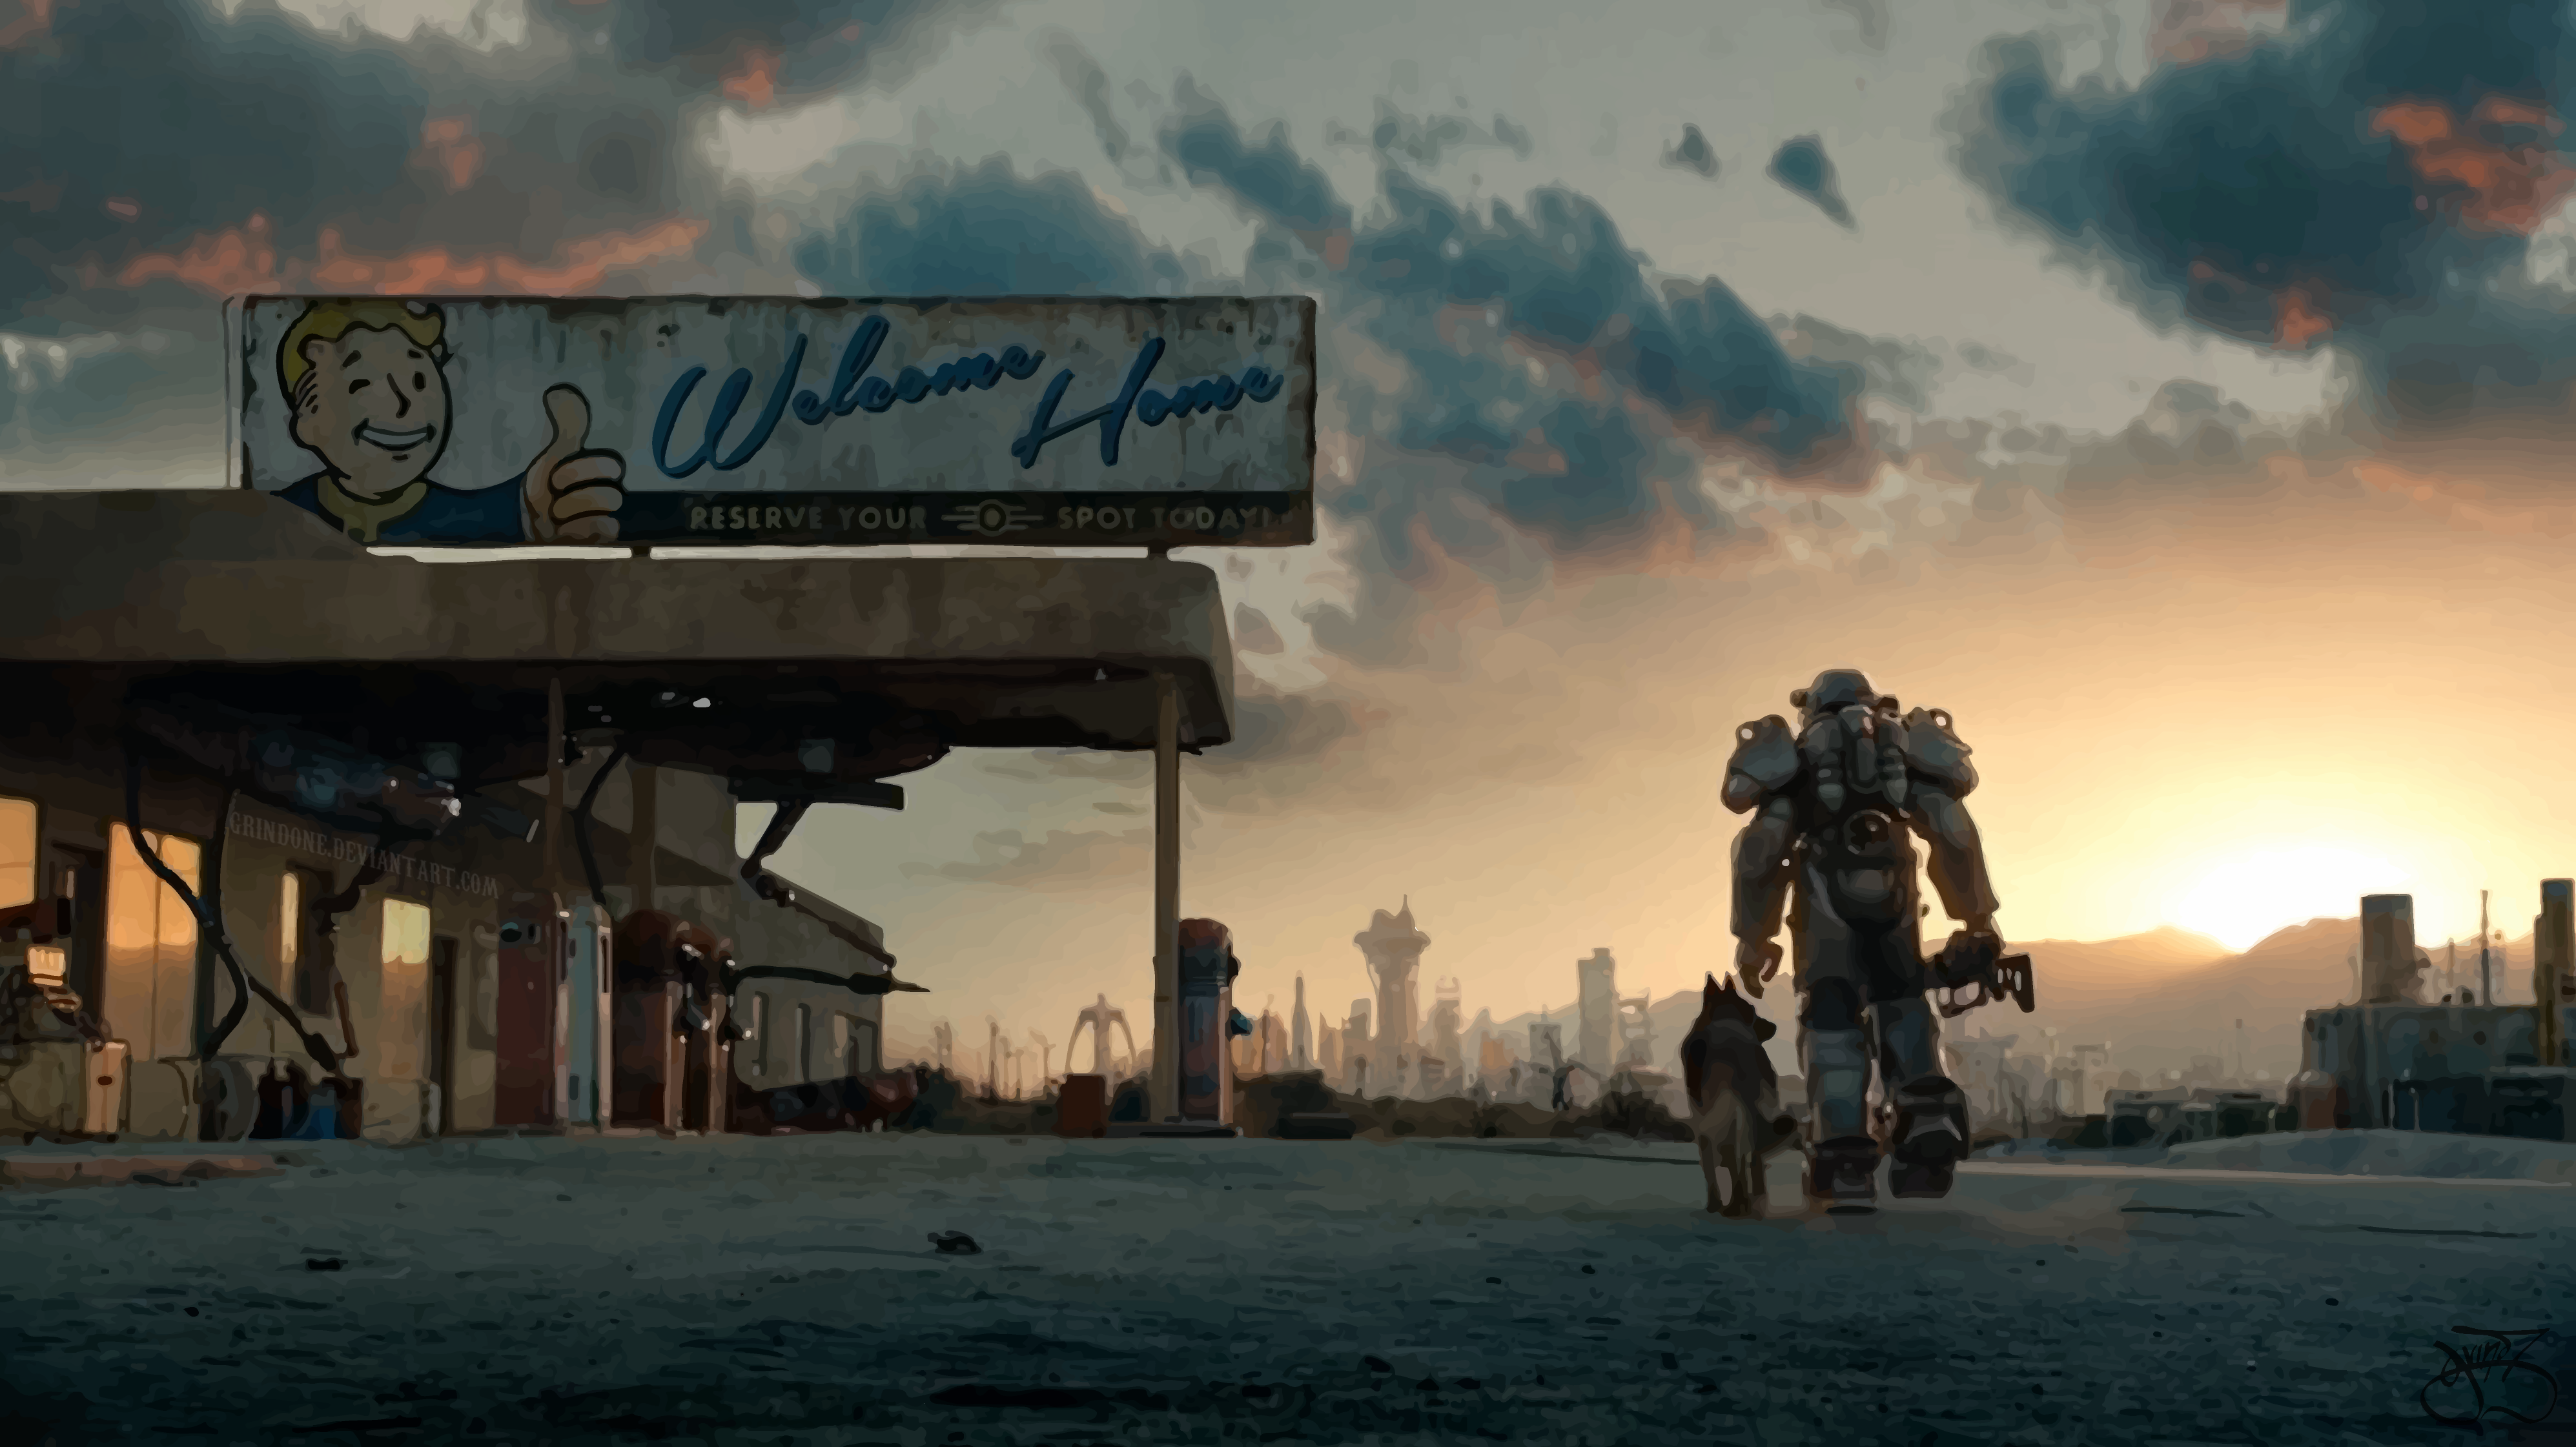 Fallout s concept art is wallpaper worthy